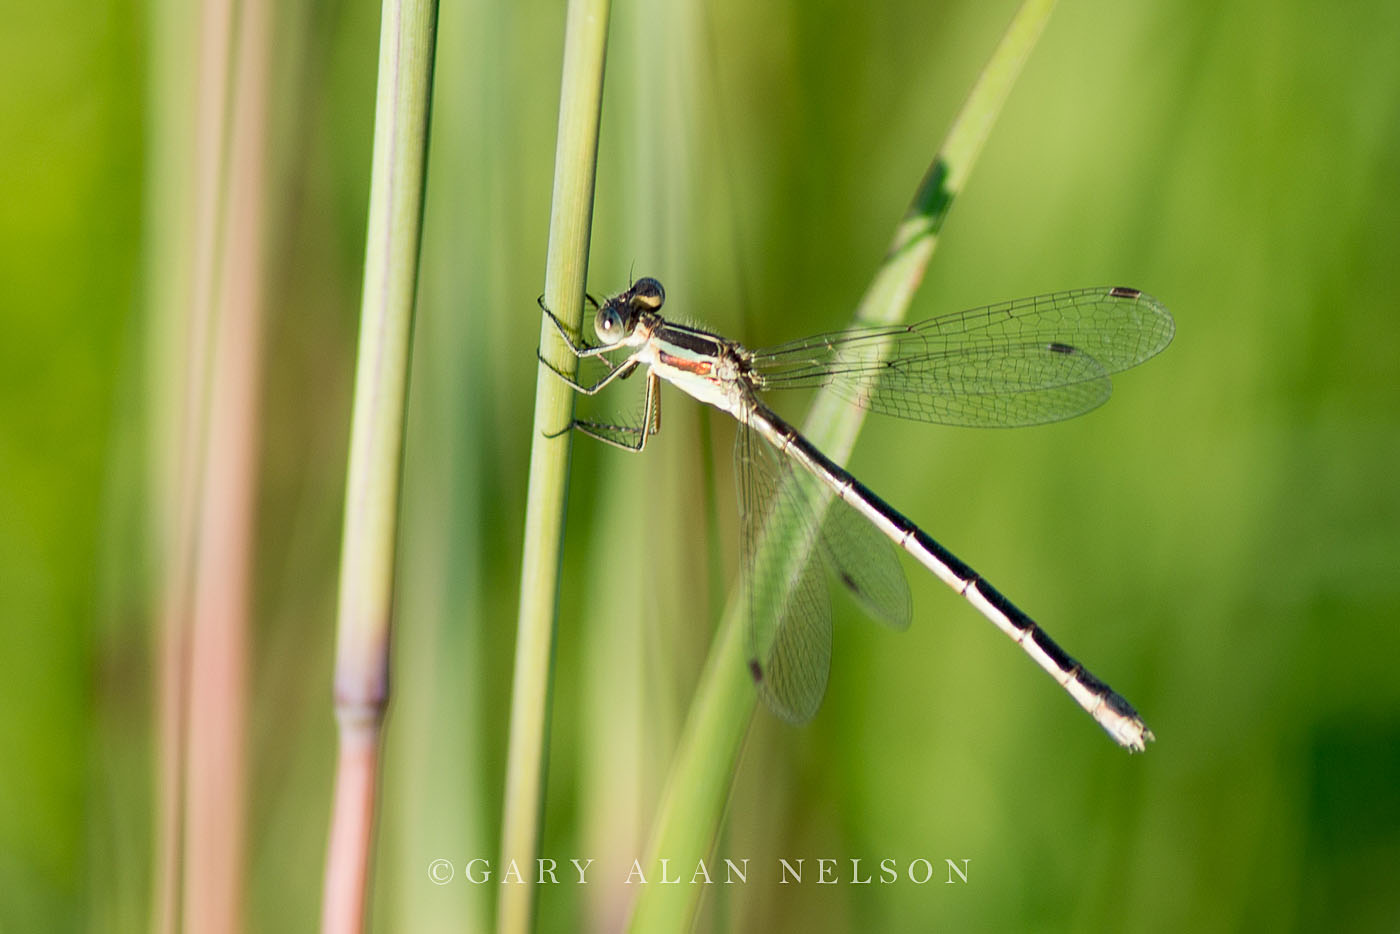 prairie grass, minnesota, damselfly, photo